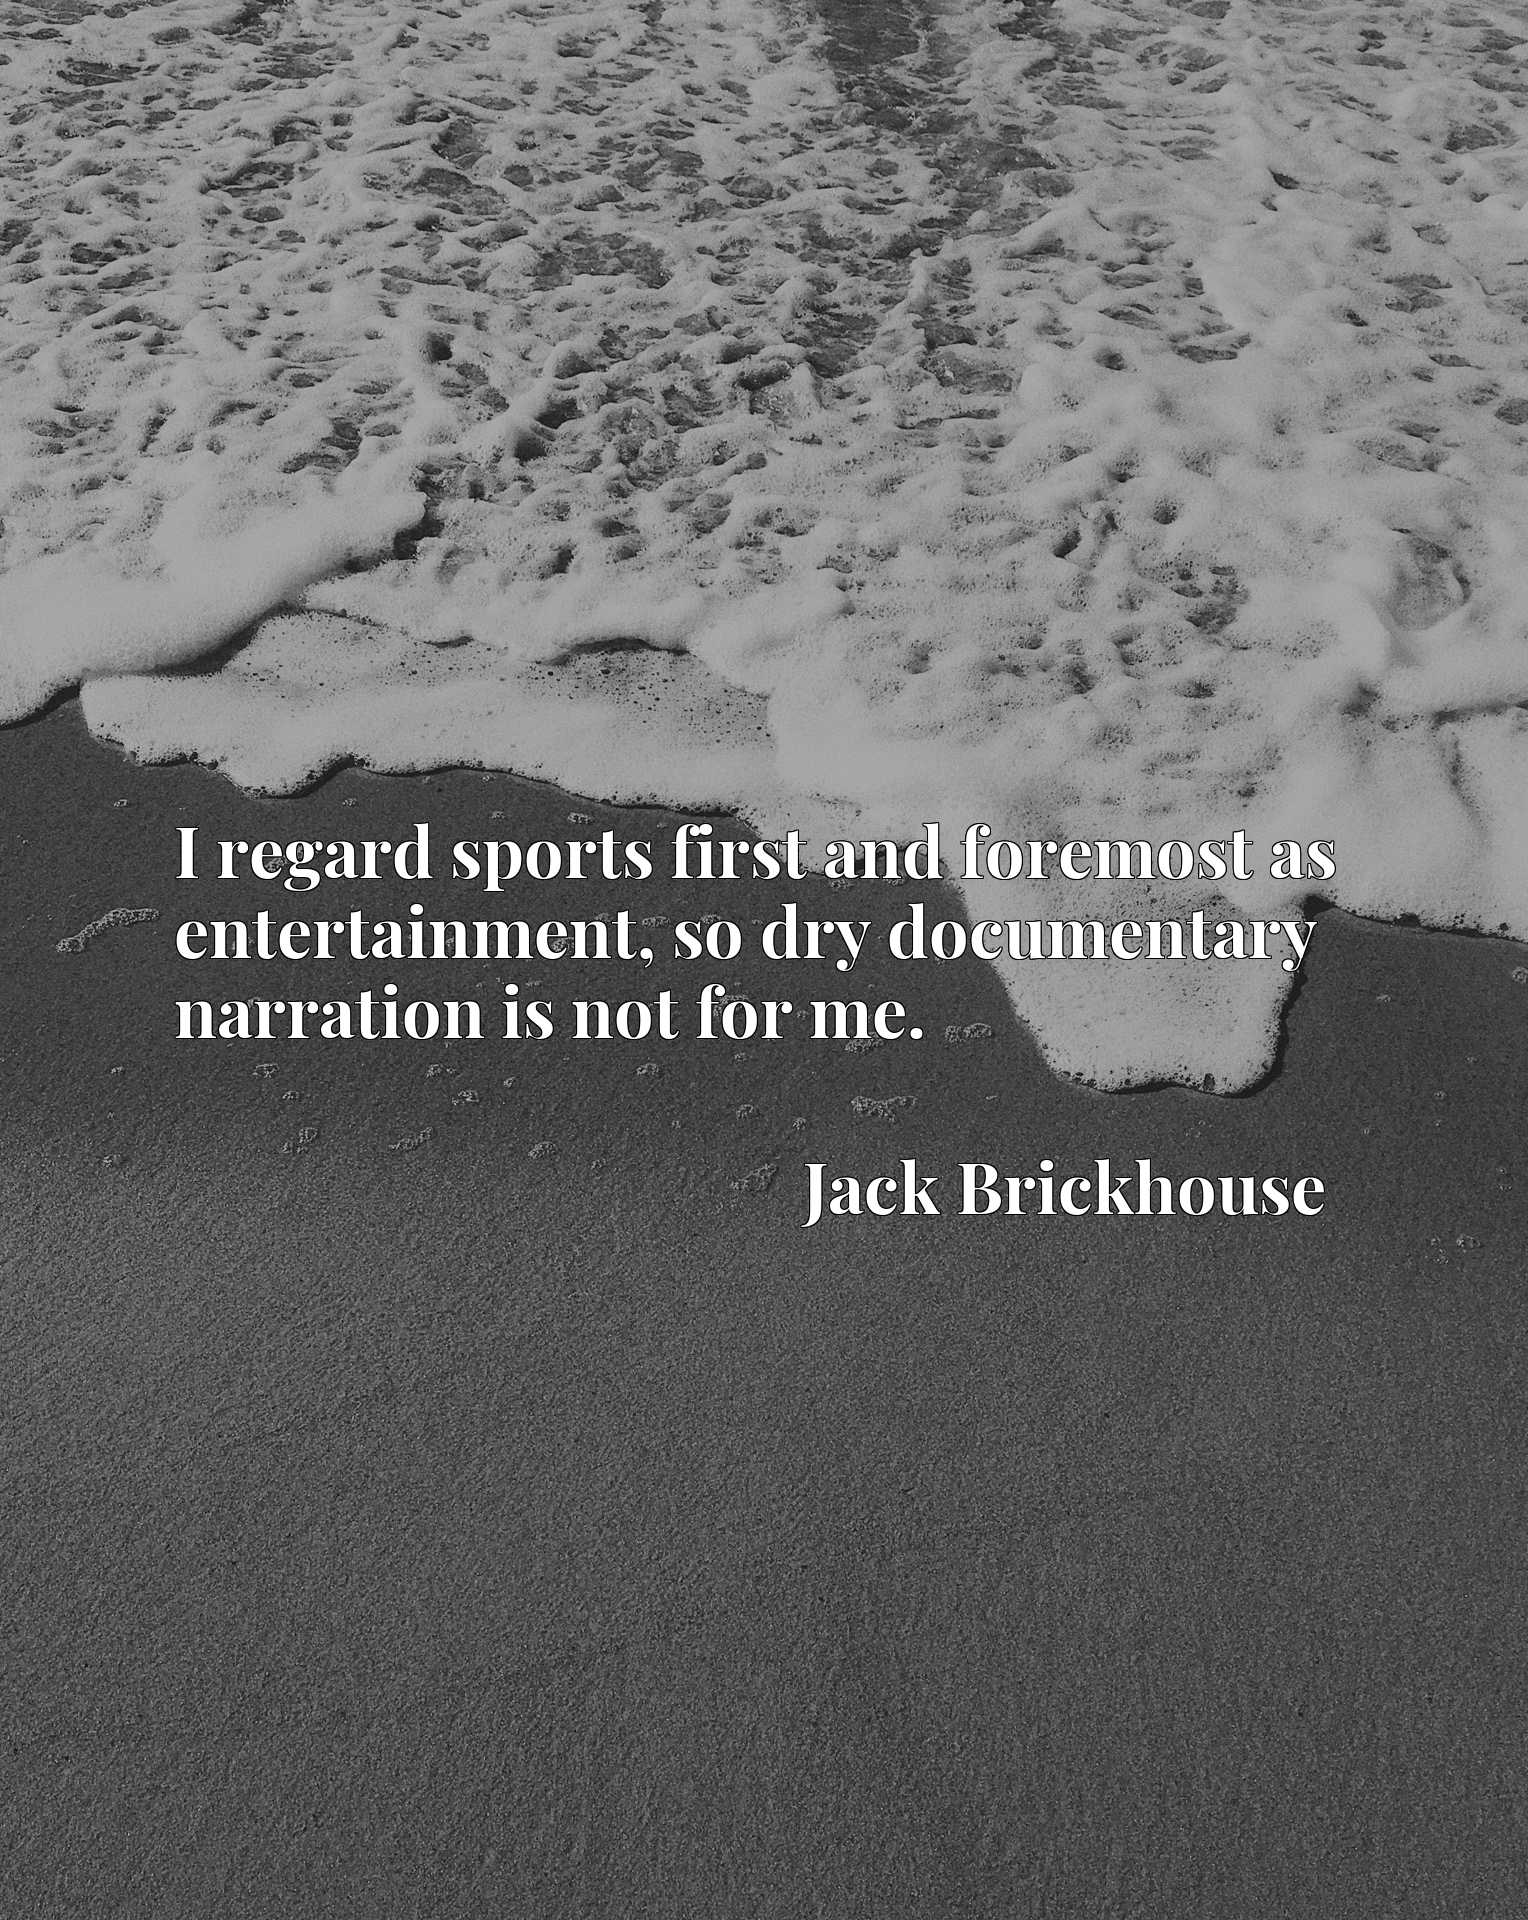 Quote Picture :I regard sports first and foremost as entertainment, so dry documentary narration is not for me.